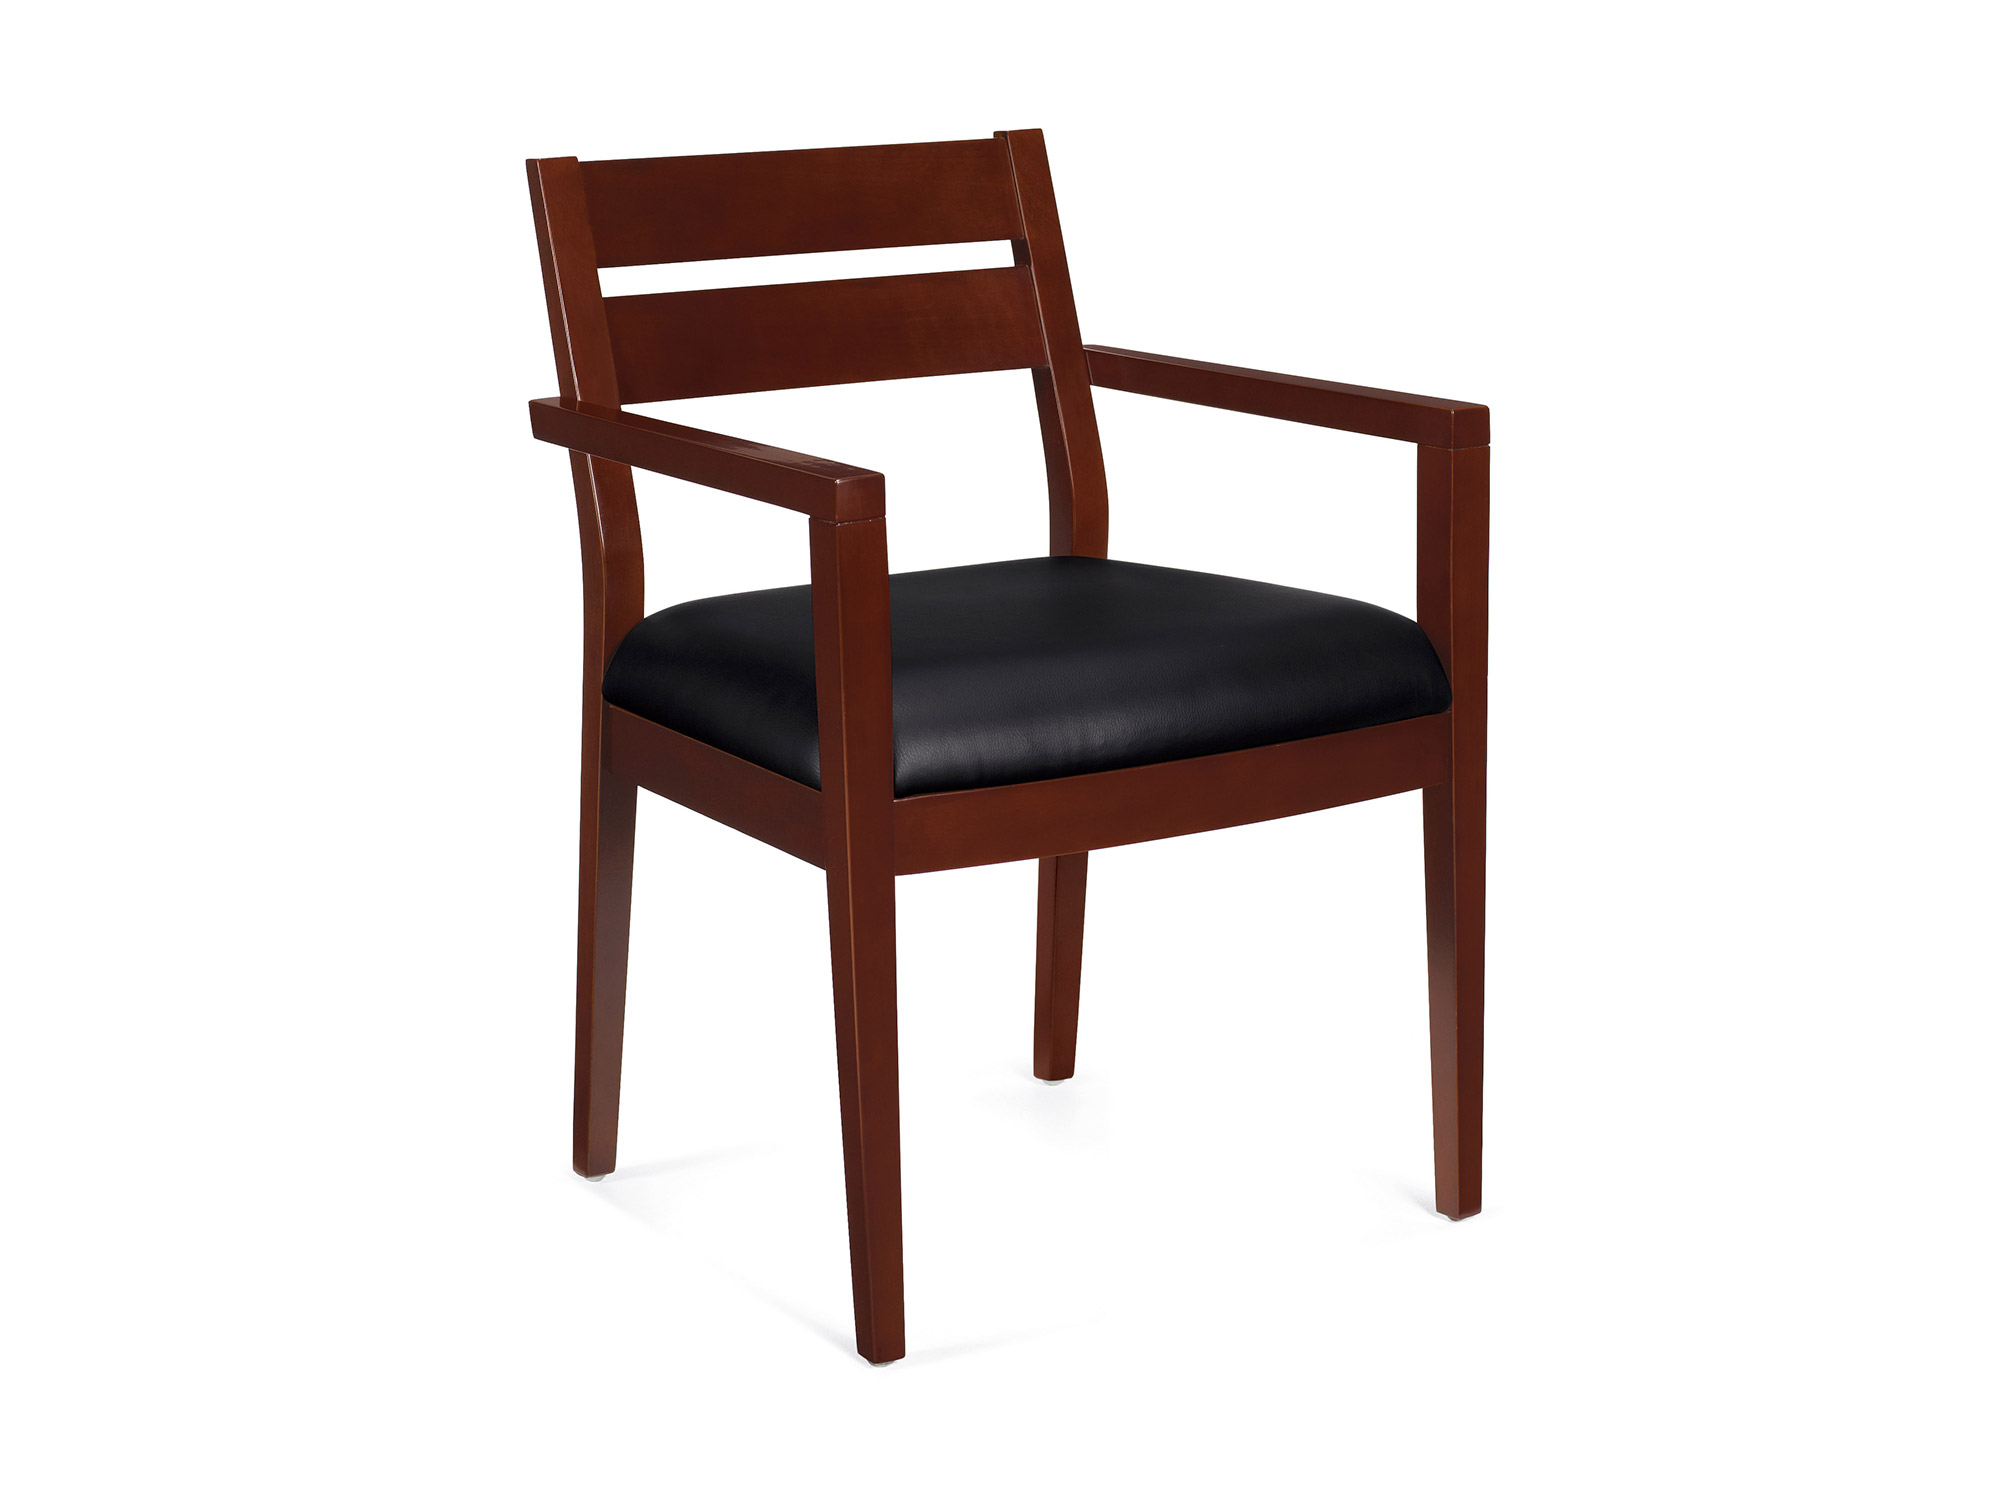 Chairs For Office #11820B